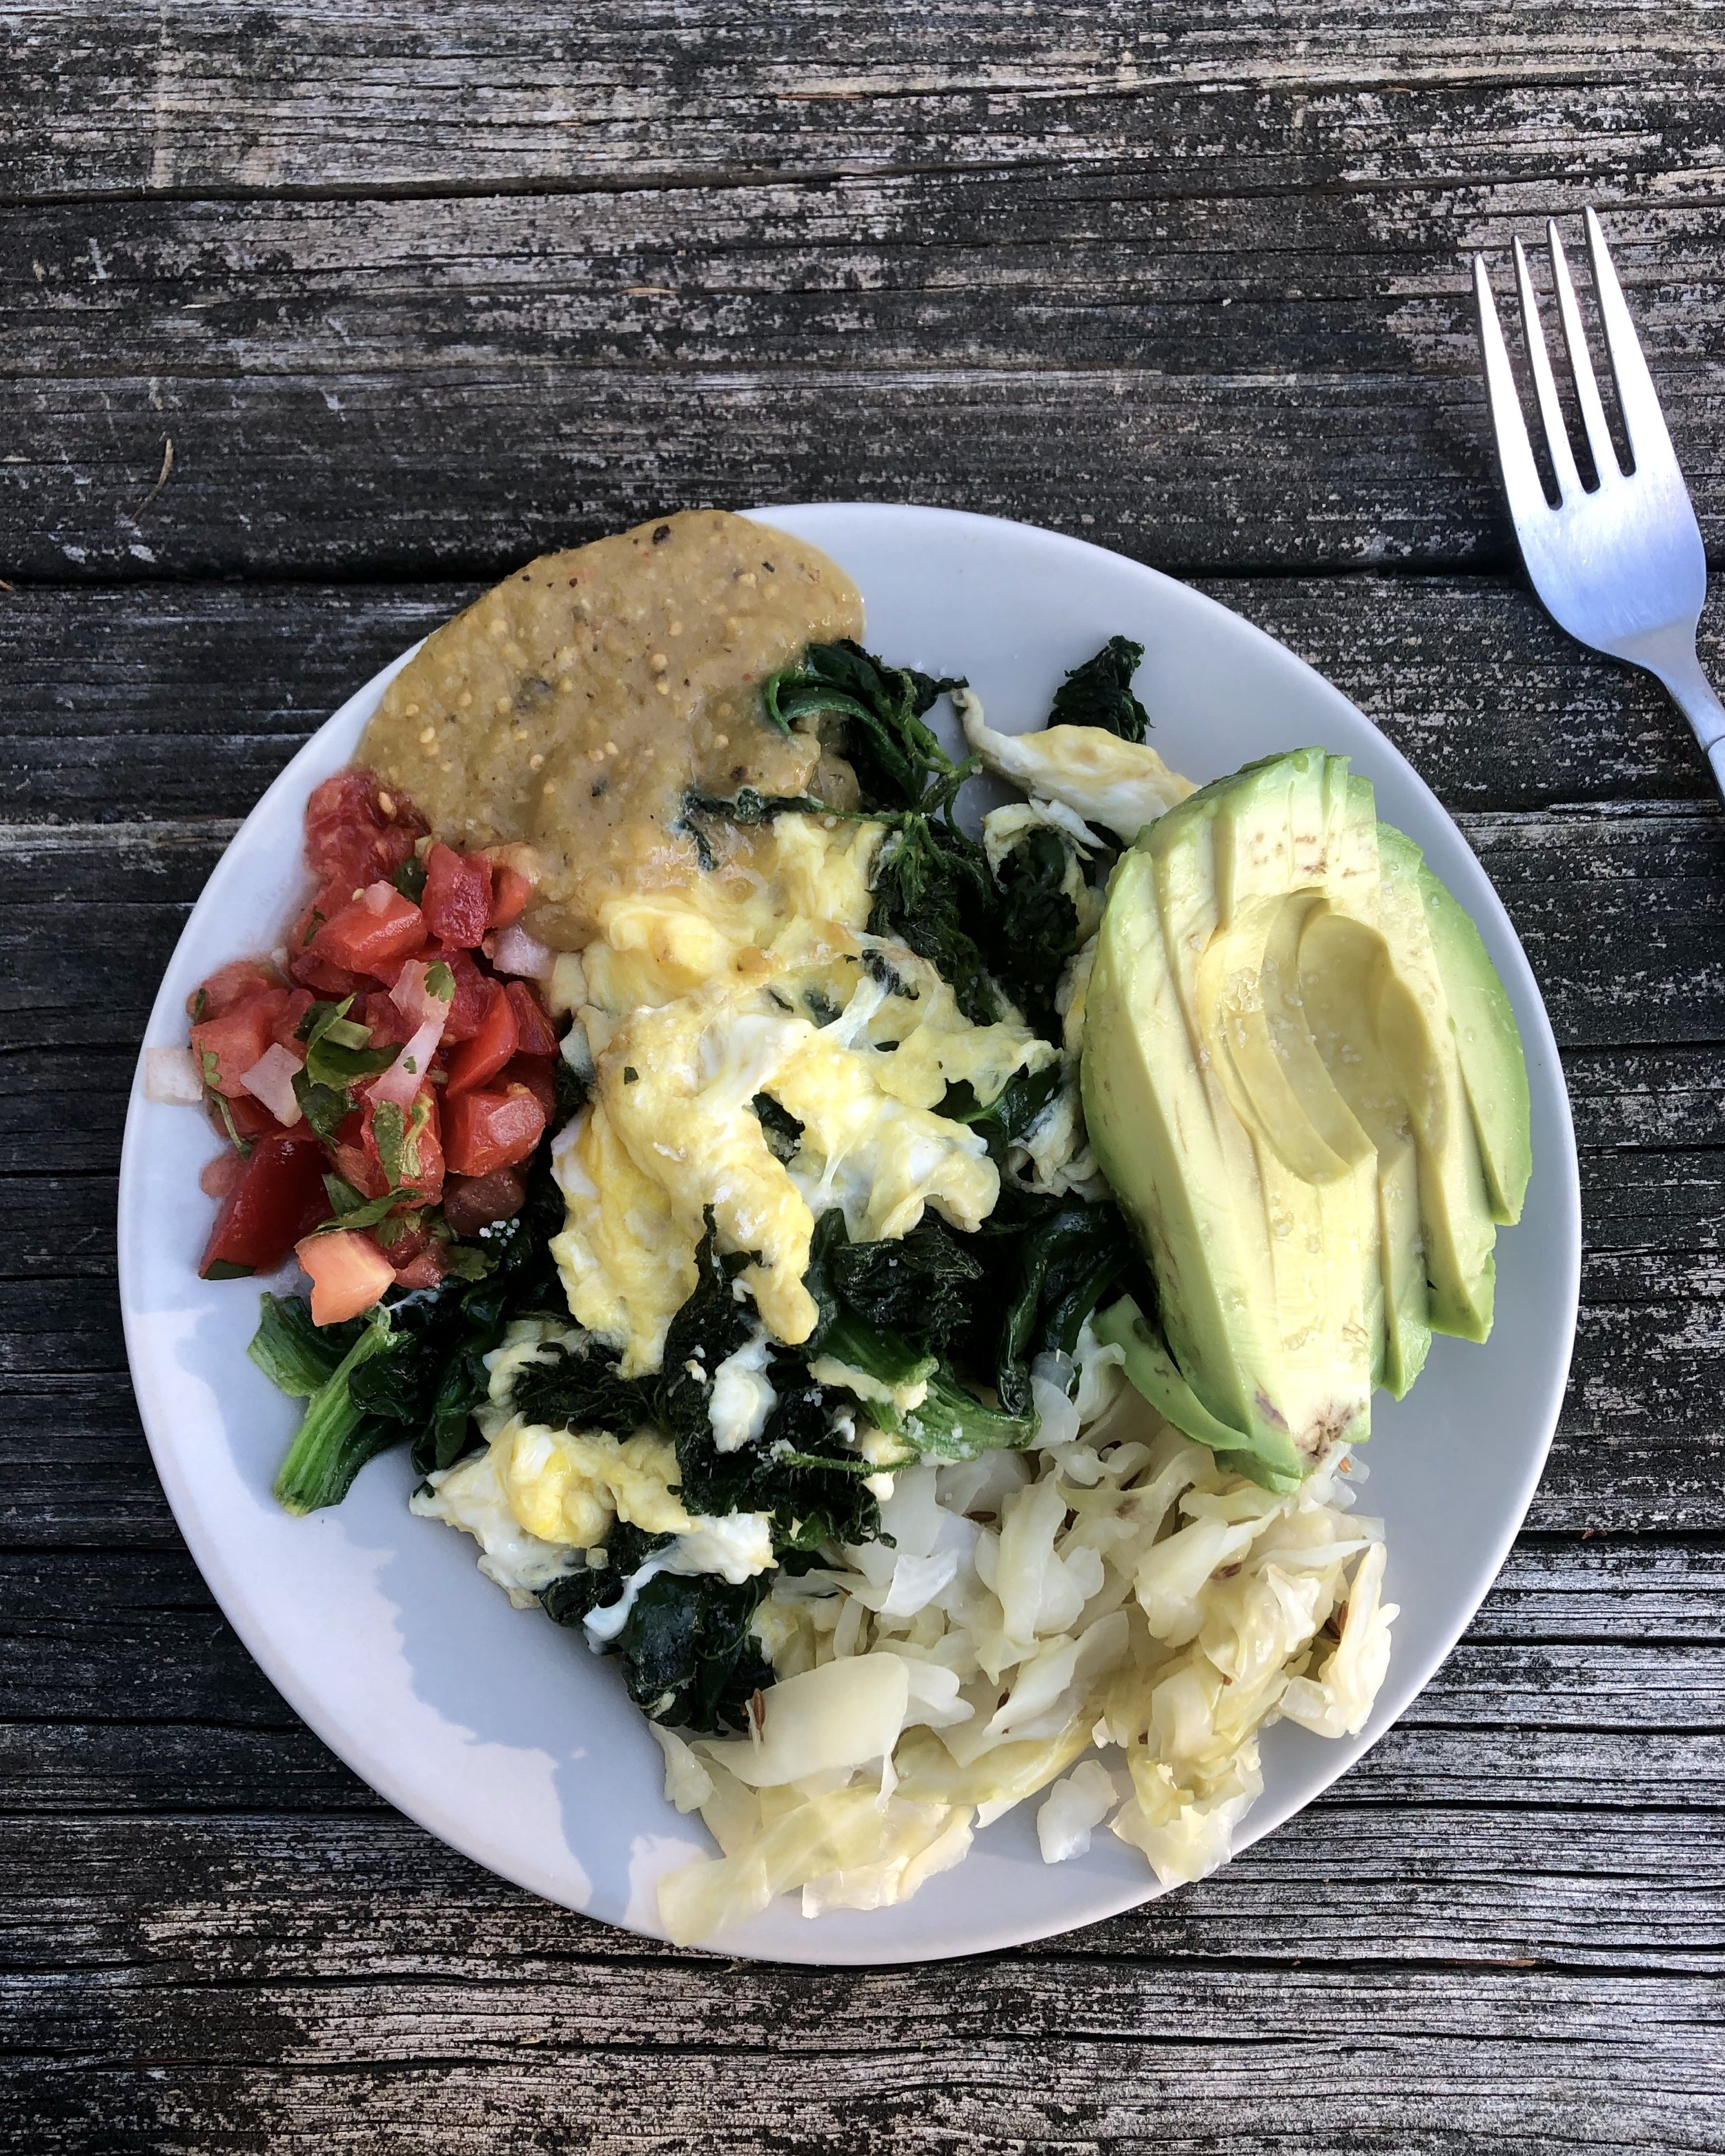 Scrambled Eggs & Nettles with avocado, 2 salsas, and sauerkraut—a nourishing and filling breakfast!